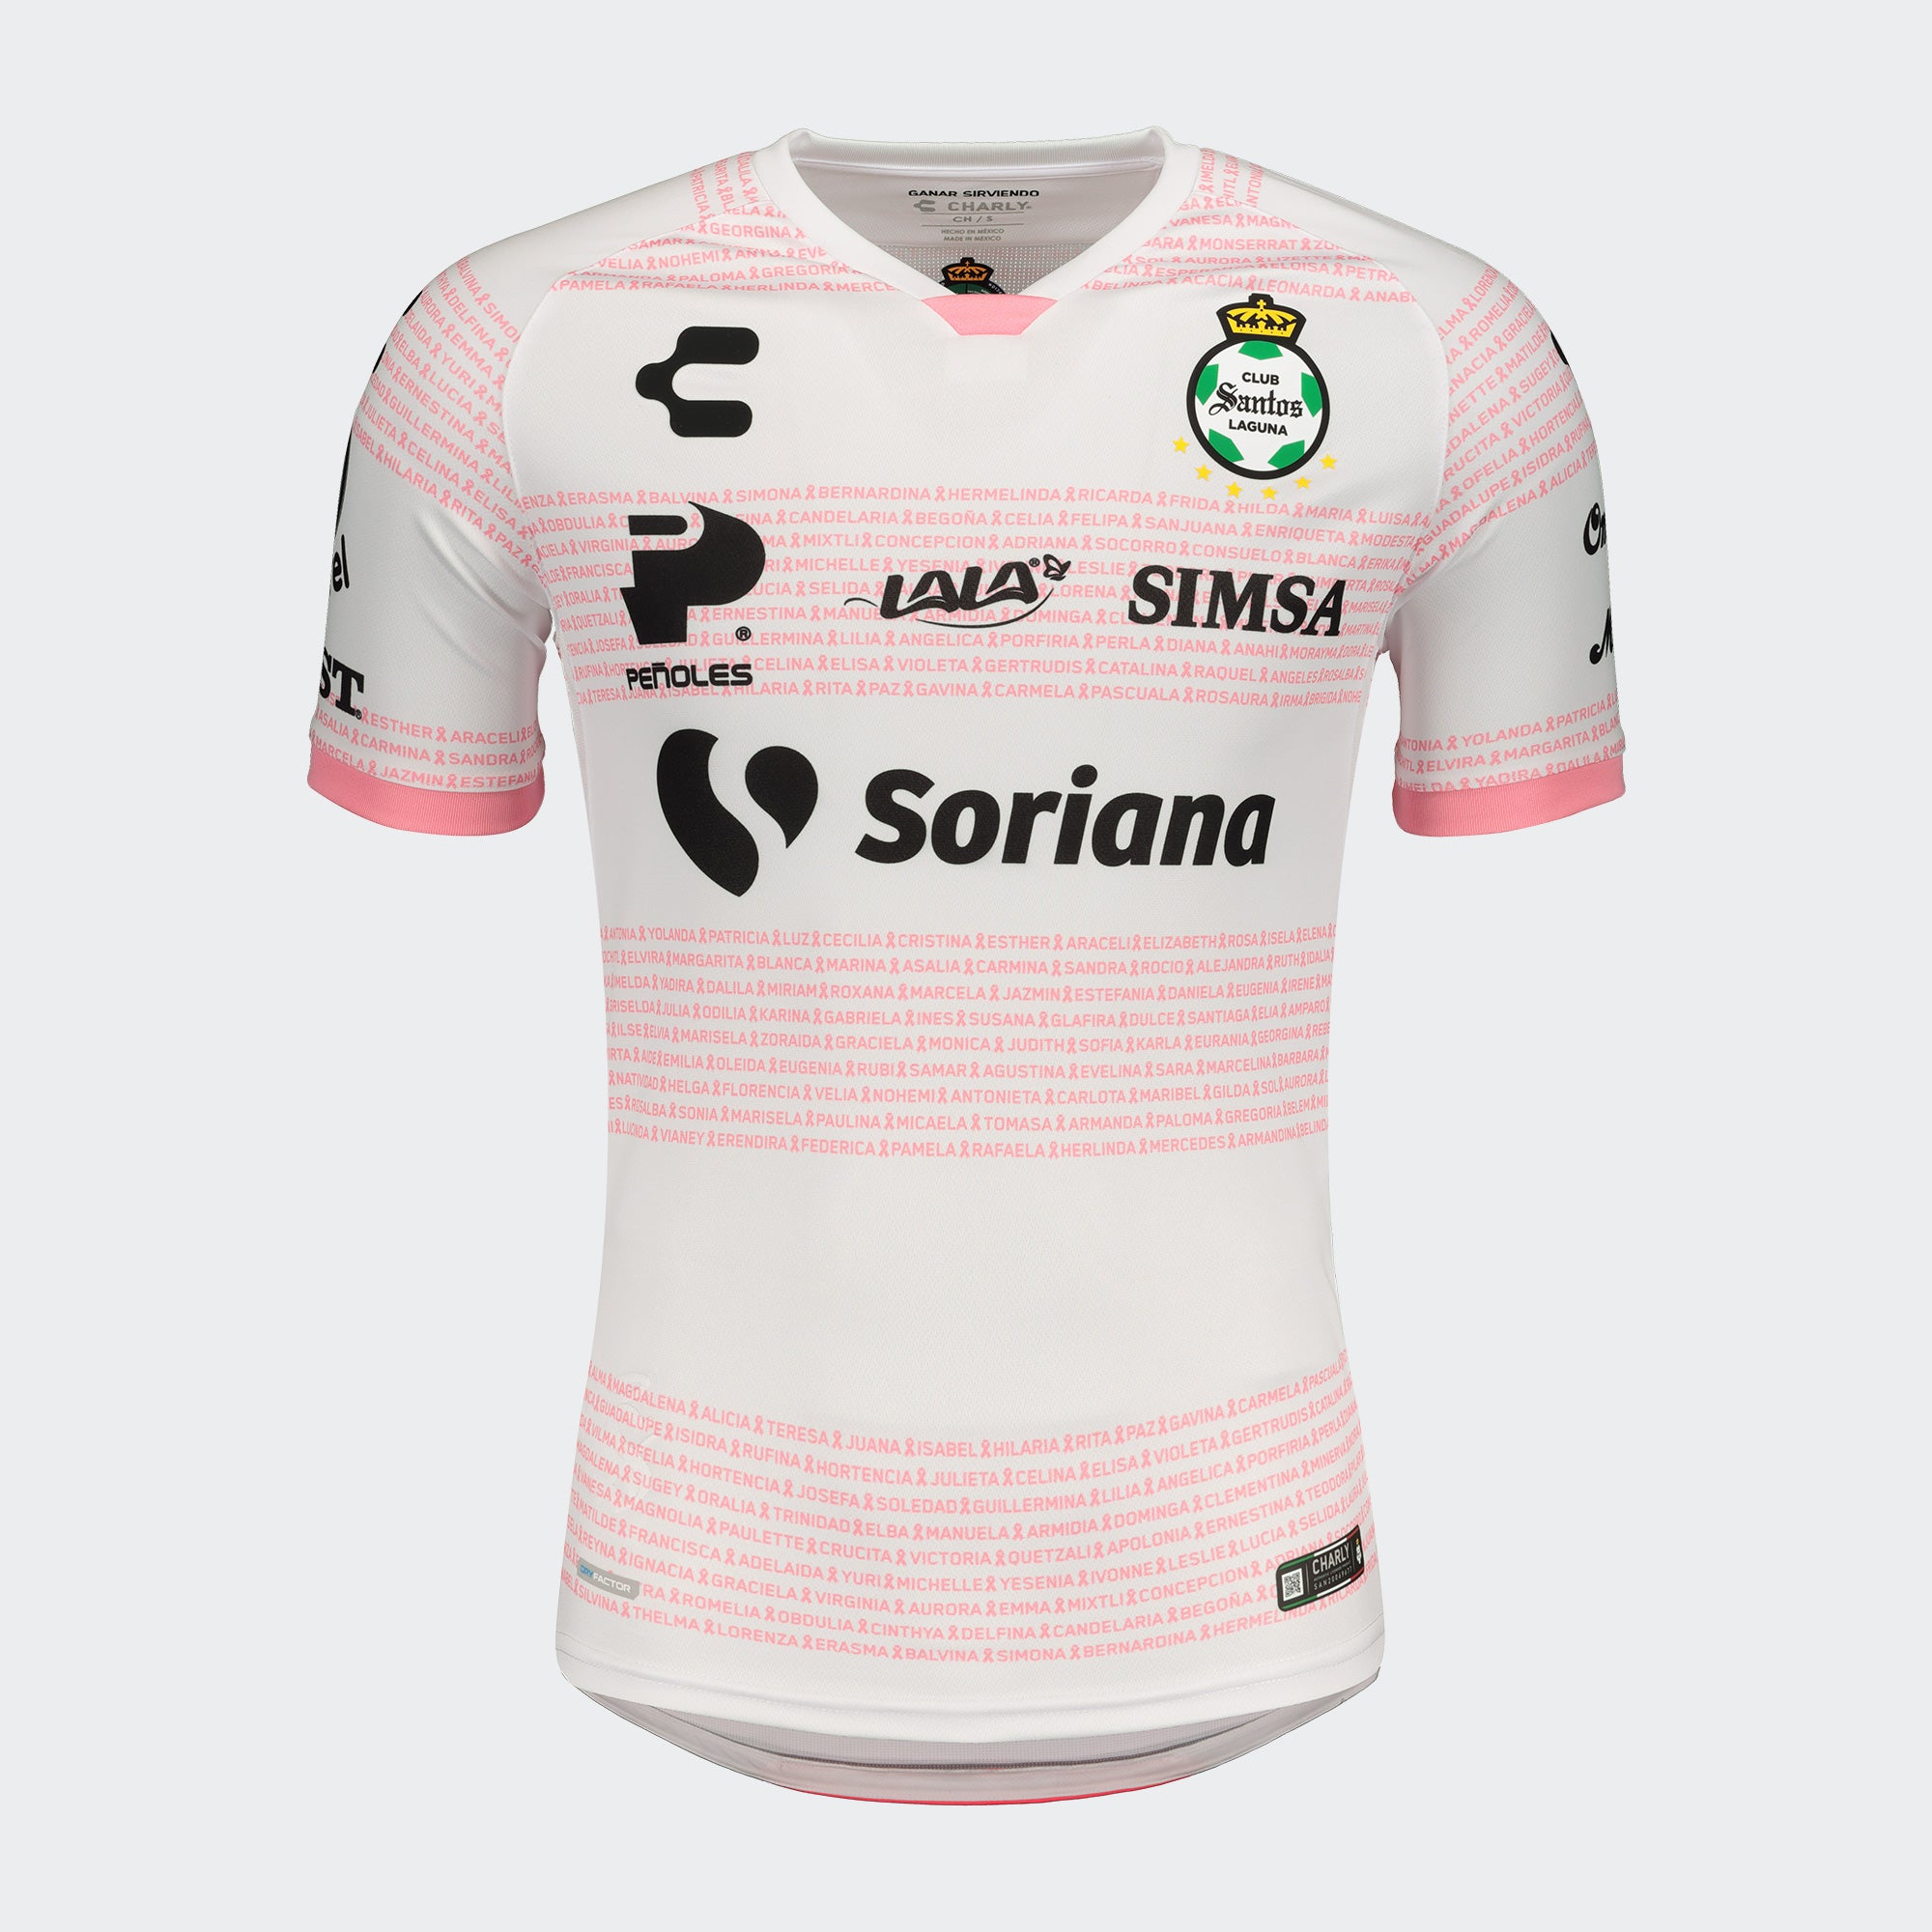 Santos Laguna Playera Breast Cancer 20/21 Hombres | Santos Laguna Breast Cancer Jersey 20/21